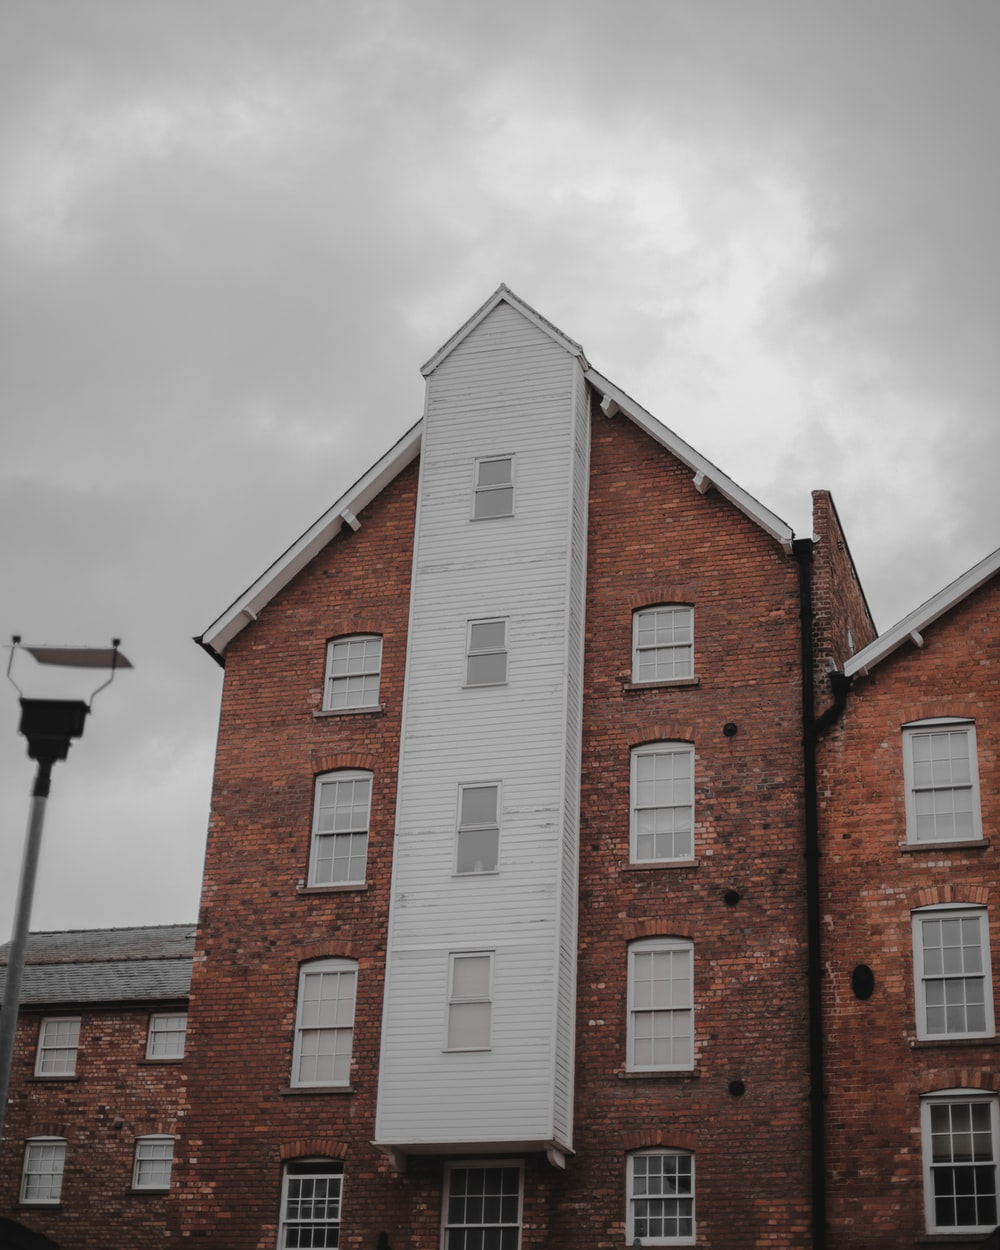 brown and white brick building under white clouds during daytime